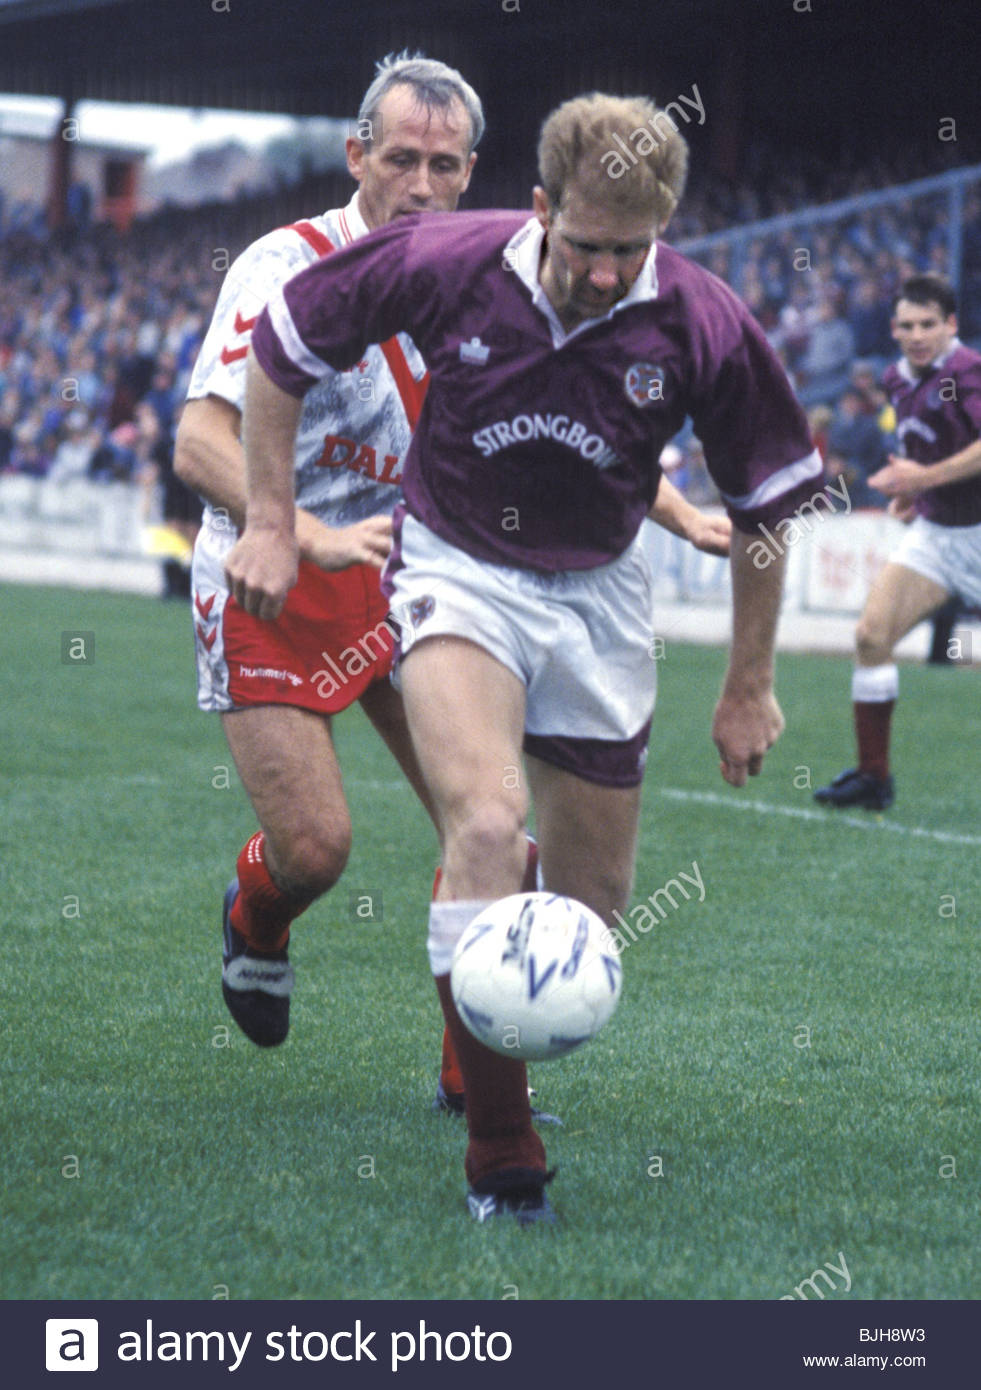 26/09/92 SCOTTISH PREMIER DIVISION AIRDRIE v HEARTS (1-0) BROOMFIELD - AIRDRIE Ian Baird (right) shields the ball - Stock Image